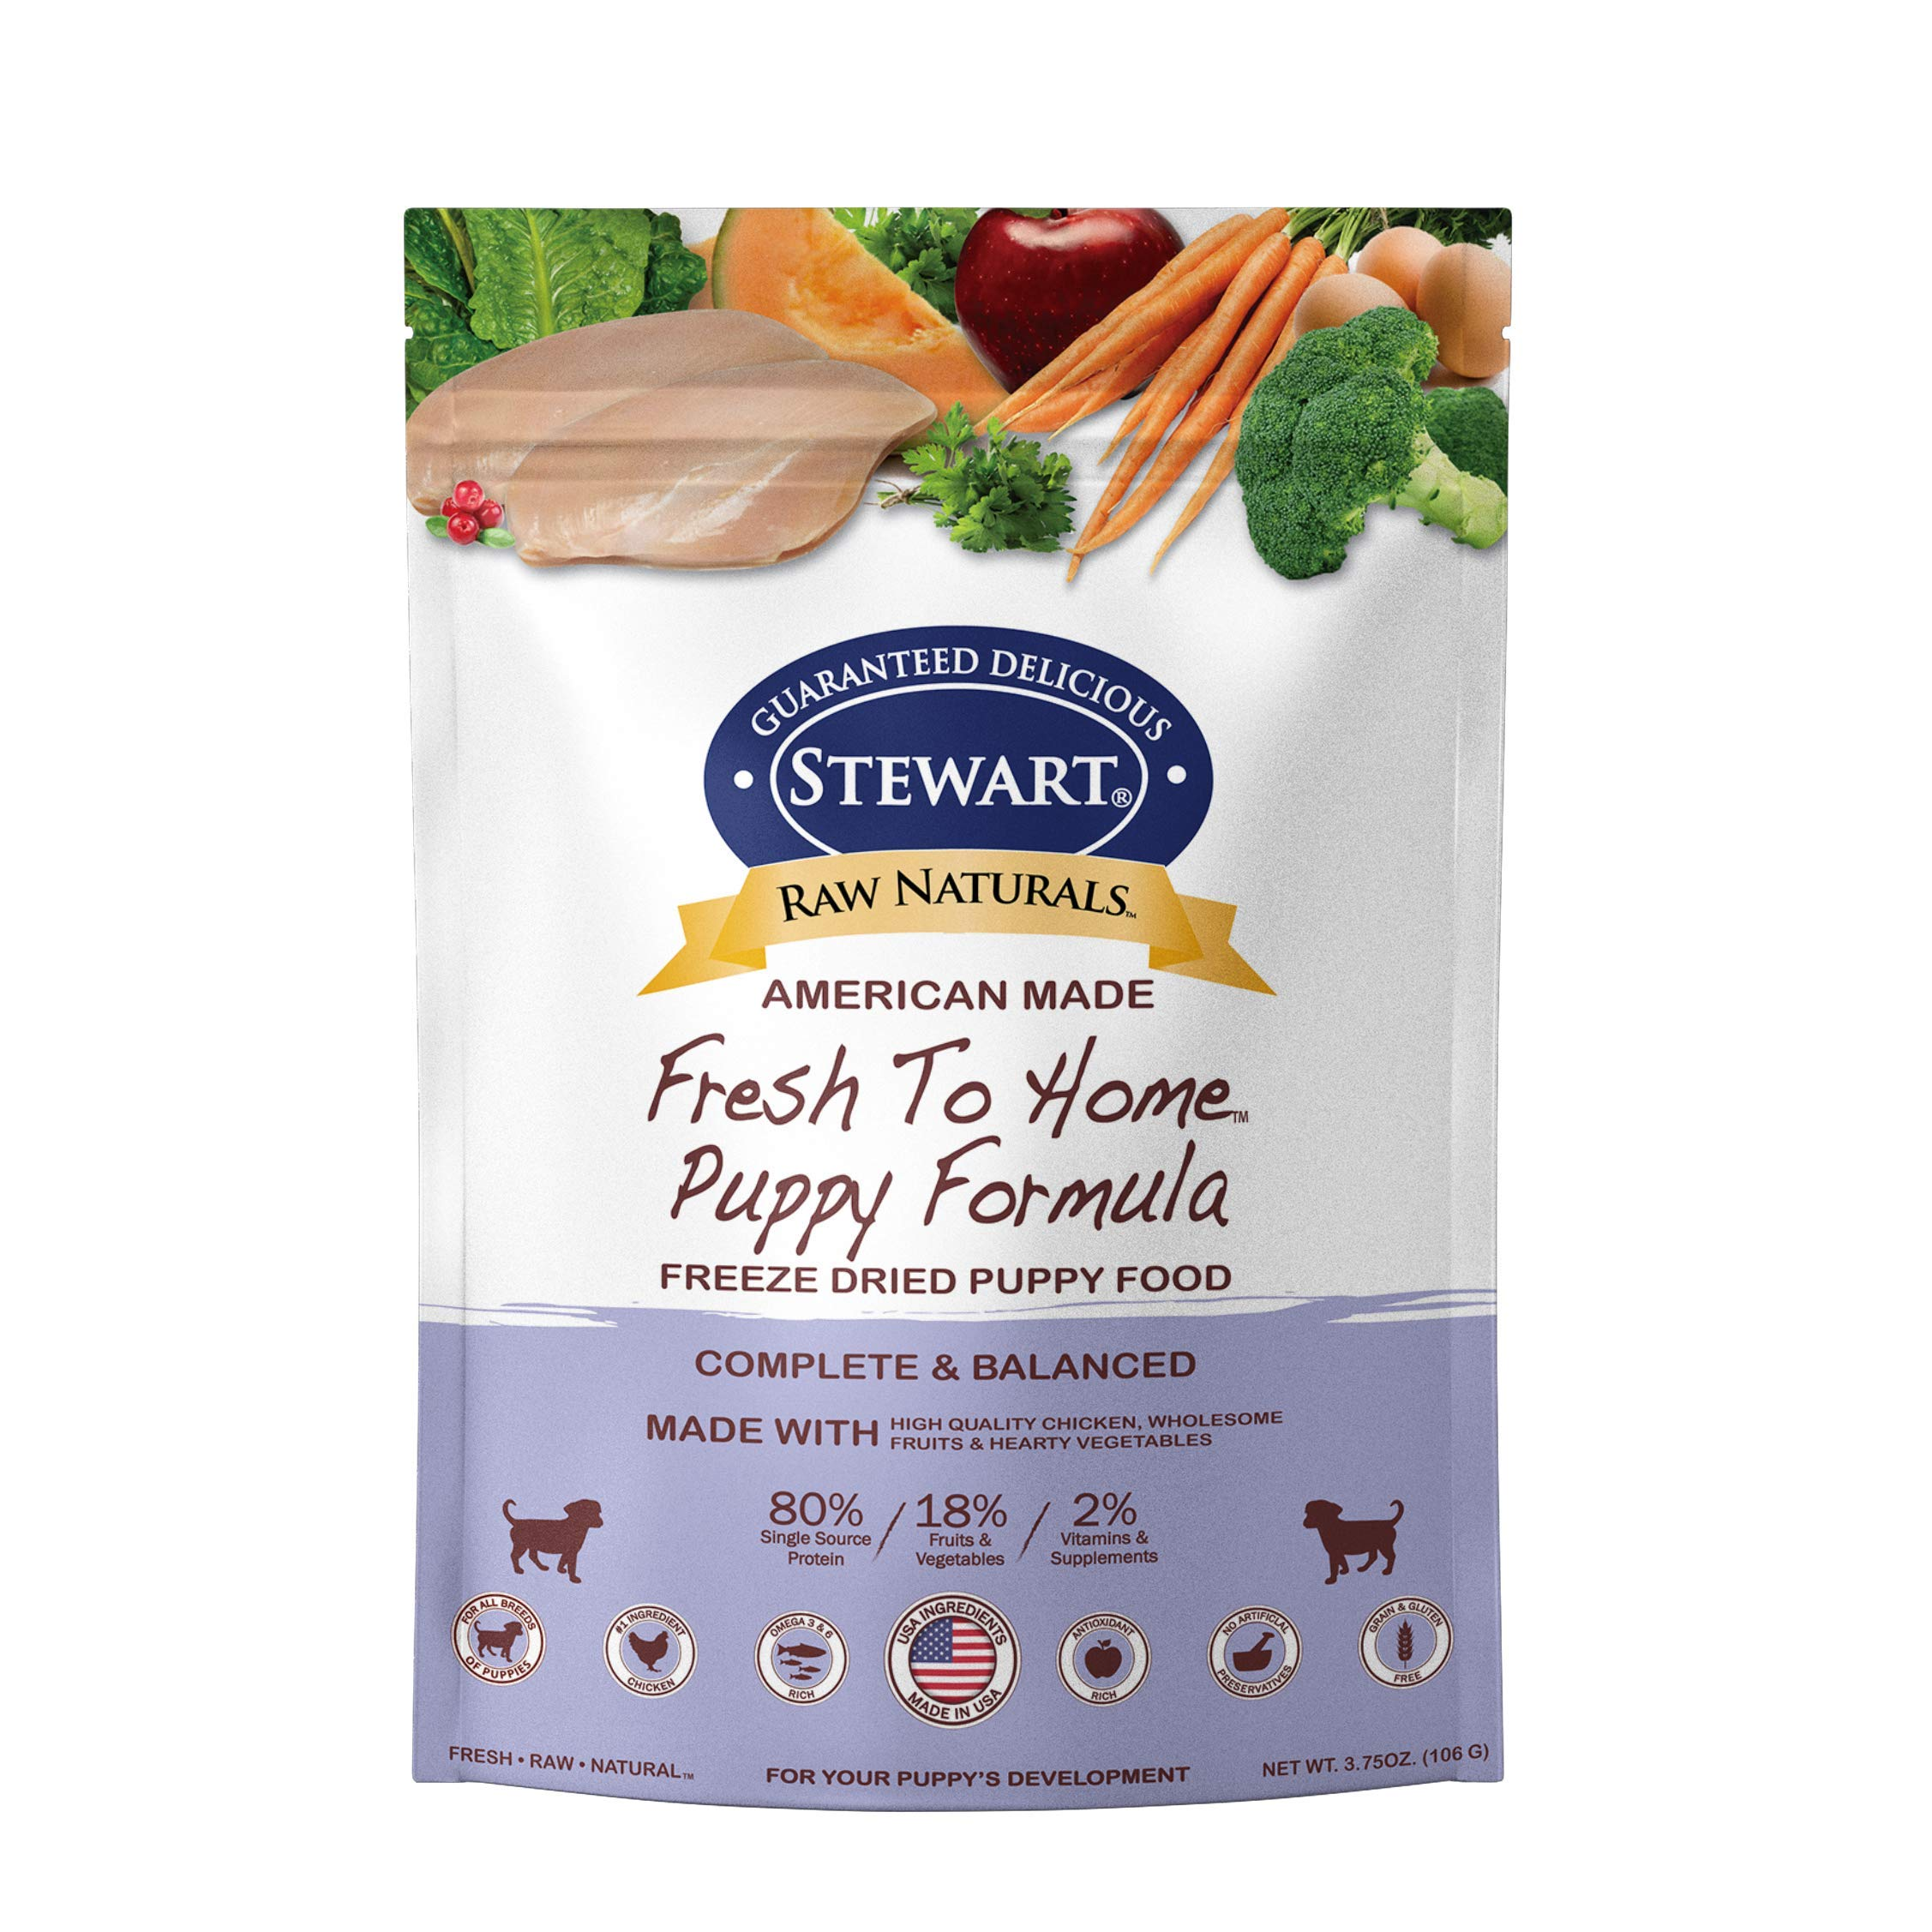 Stewart Raw Naturals Freeze Dried Puppy Food Grain Free Made in USA with Chicken, Fruits, & Vegetables for Fresh To Home All Natural Recipe, Trial Size by Stewart